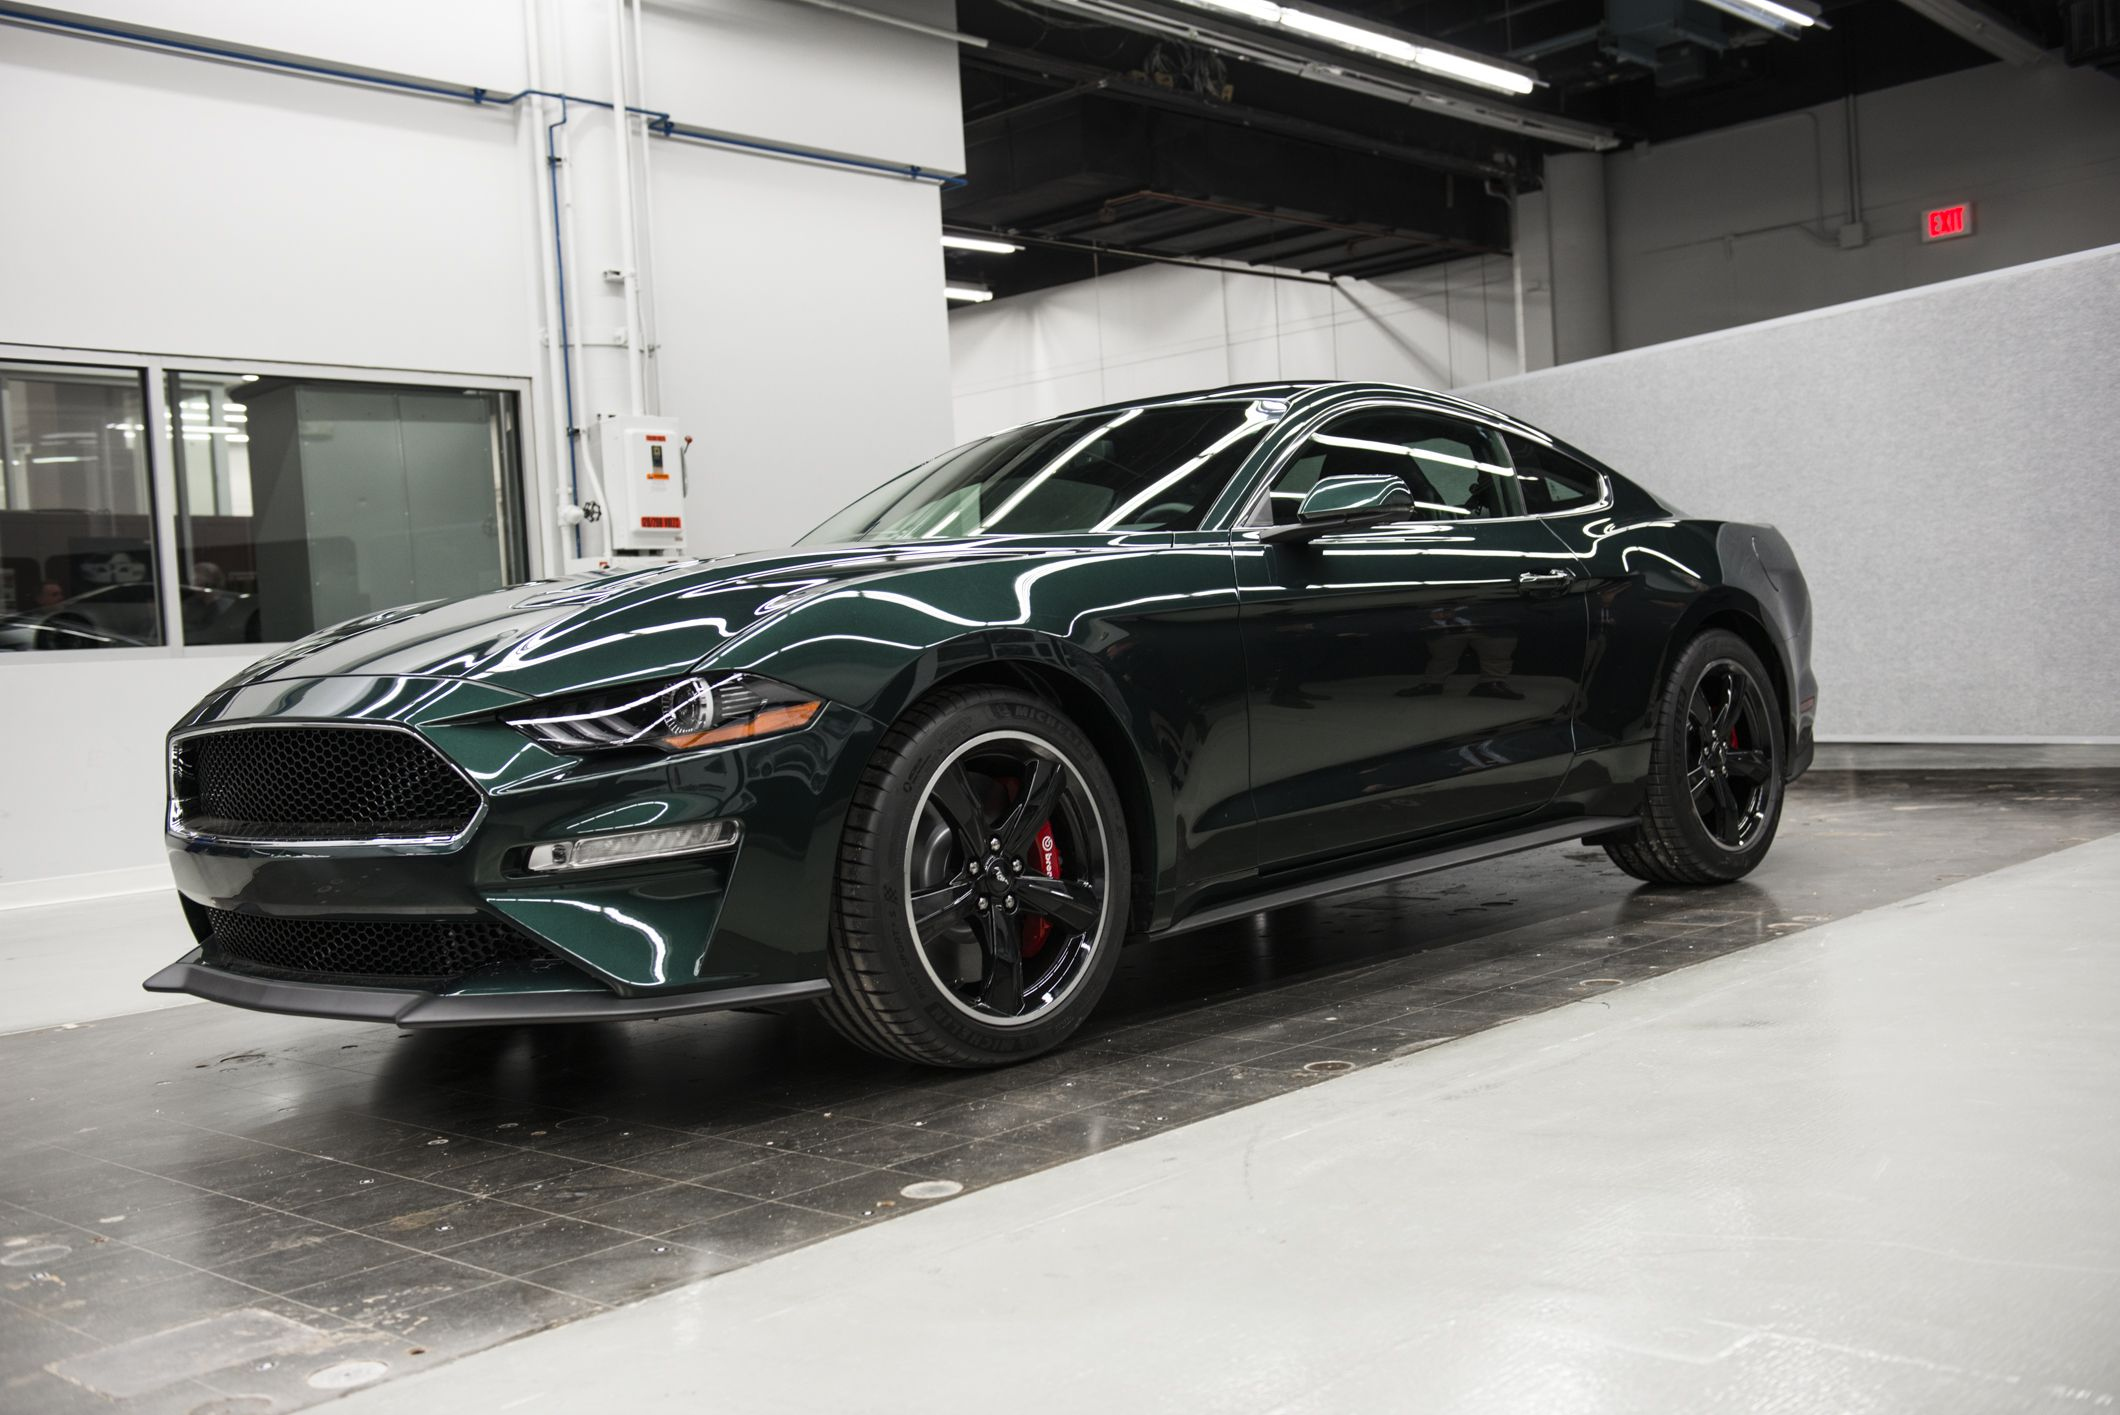 2019 ford mustang bullitt revealed new mustang bullitt specs